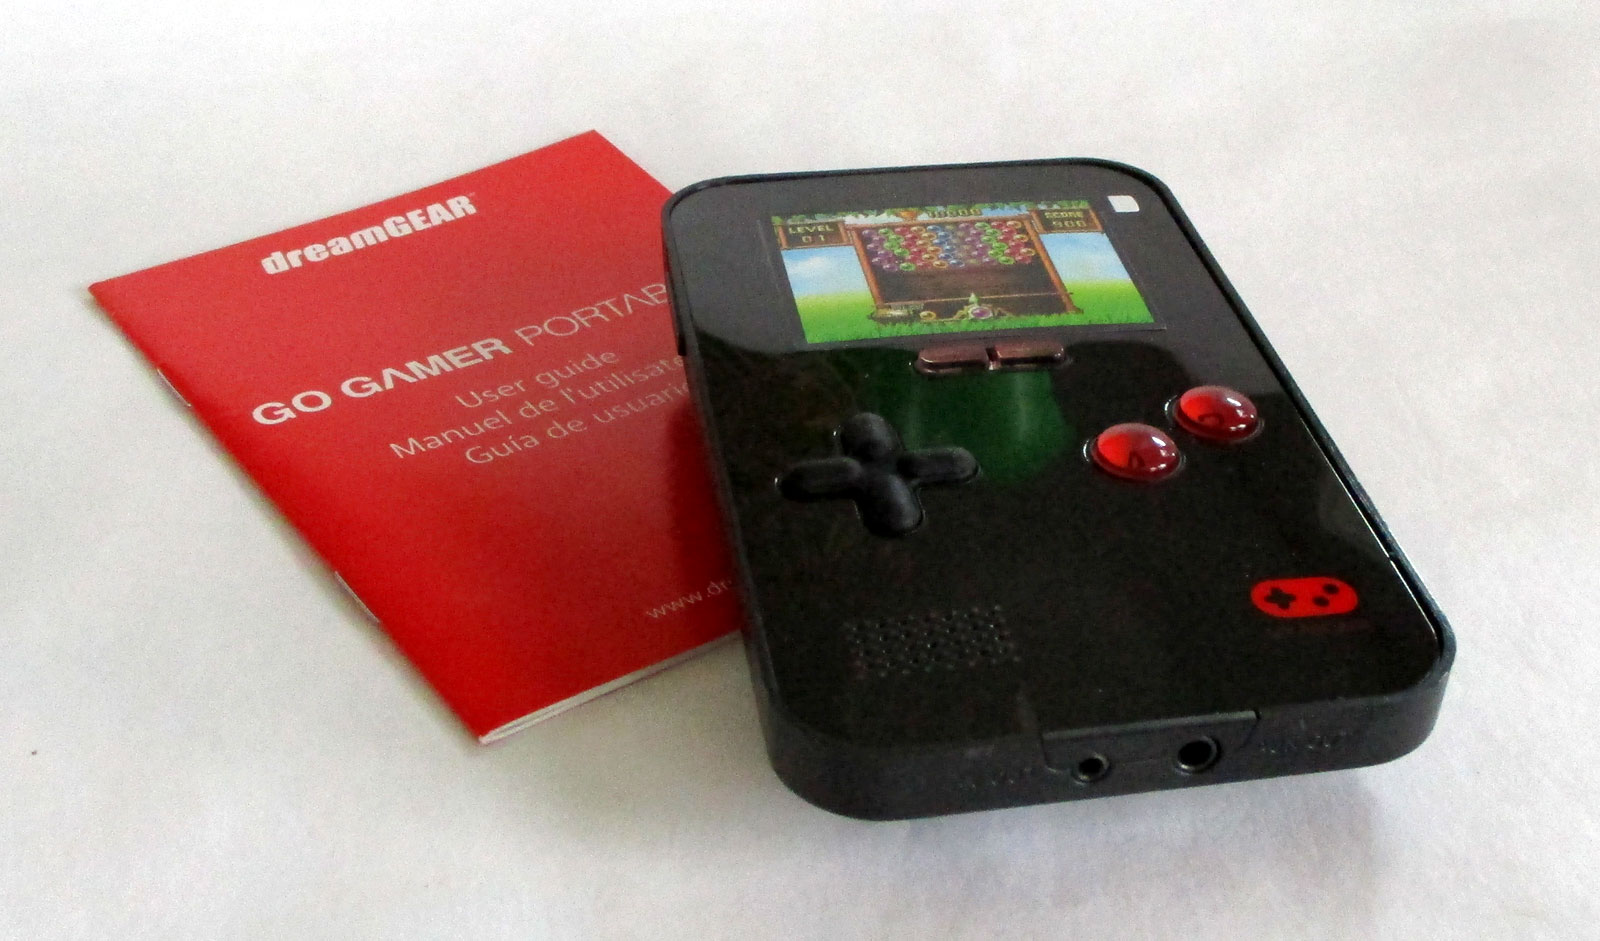 Dreamgear 39 S Go Gamer Portable Game Console Contains